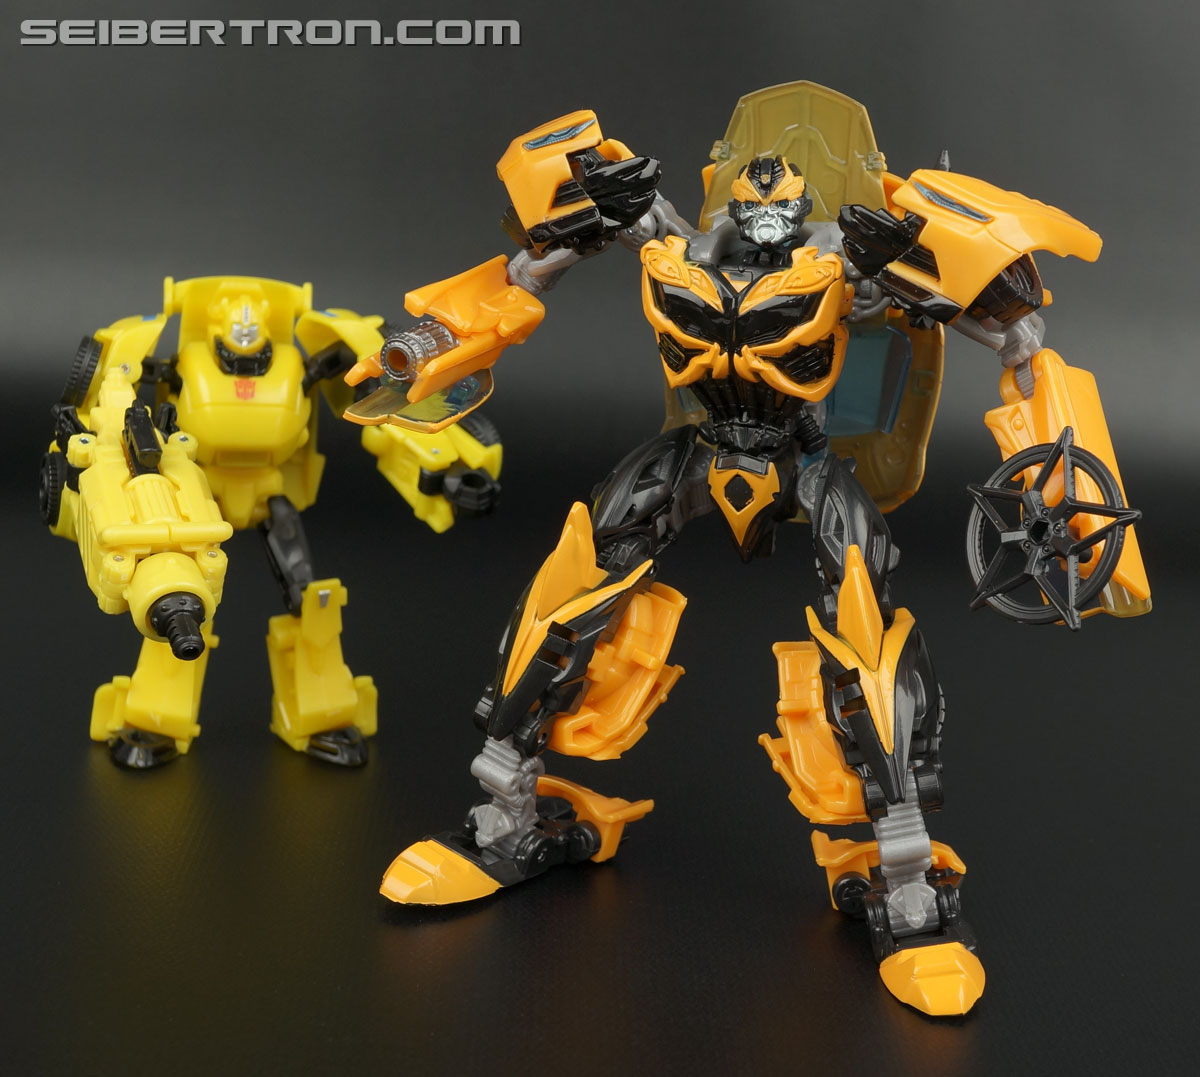 Transformers Age of Extinction: Generations Bumblebee (Image #154 of 190)